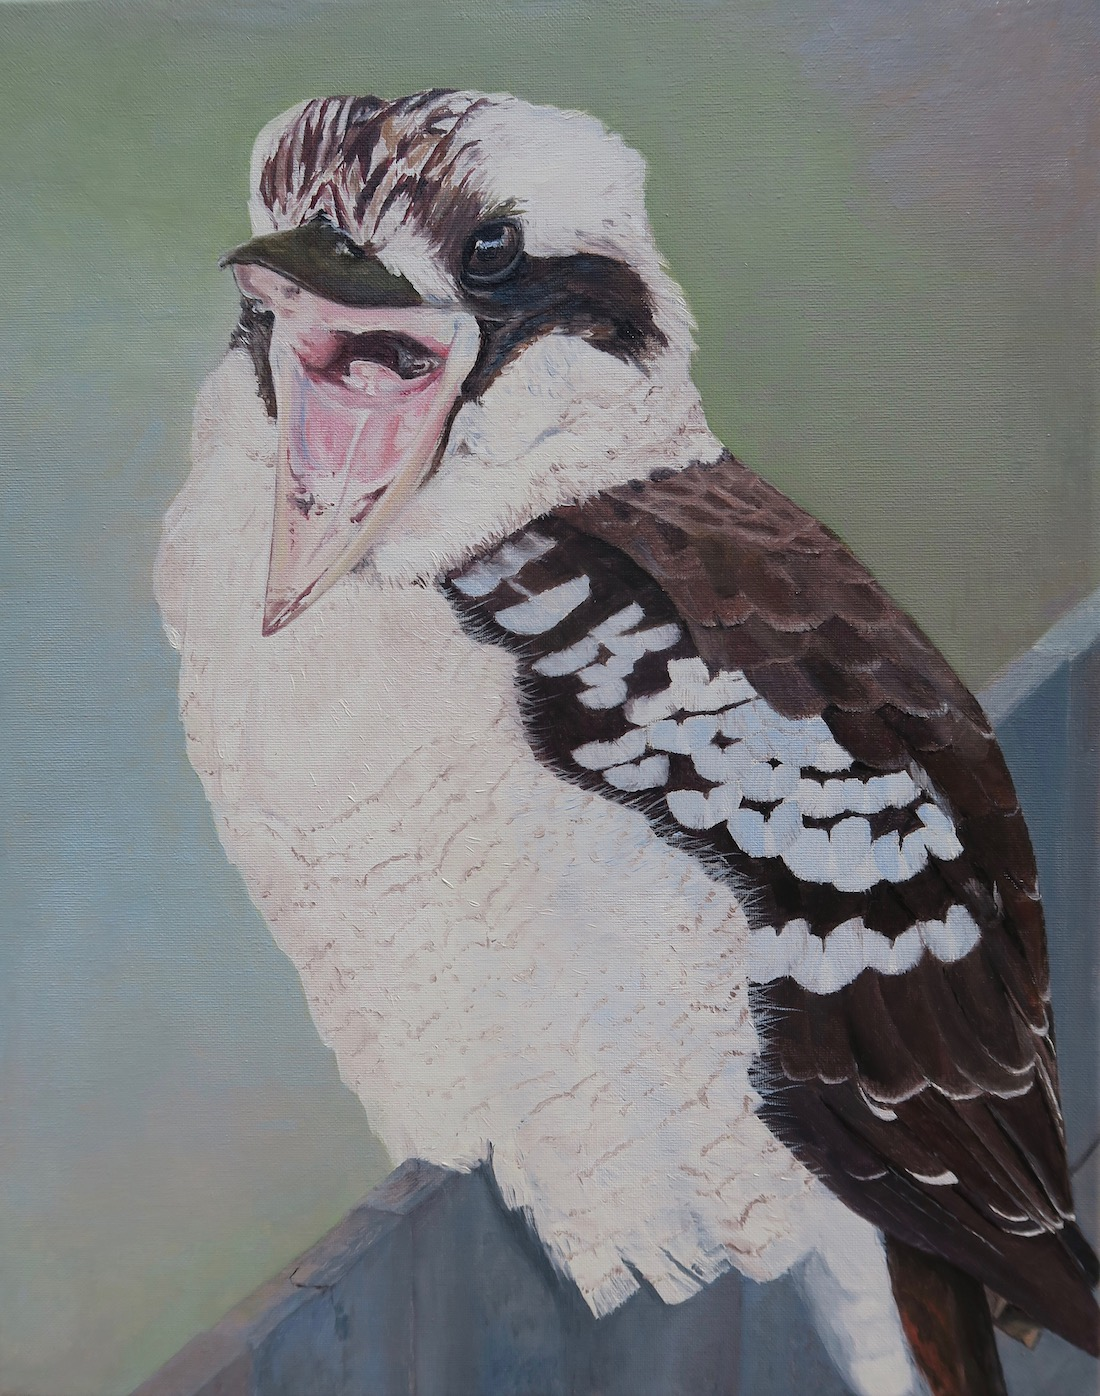 Painting of Angry Kookaburra by Niko Dujmovic